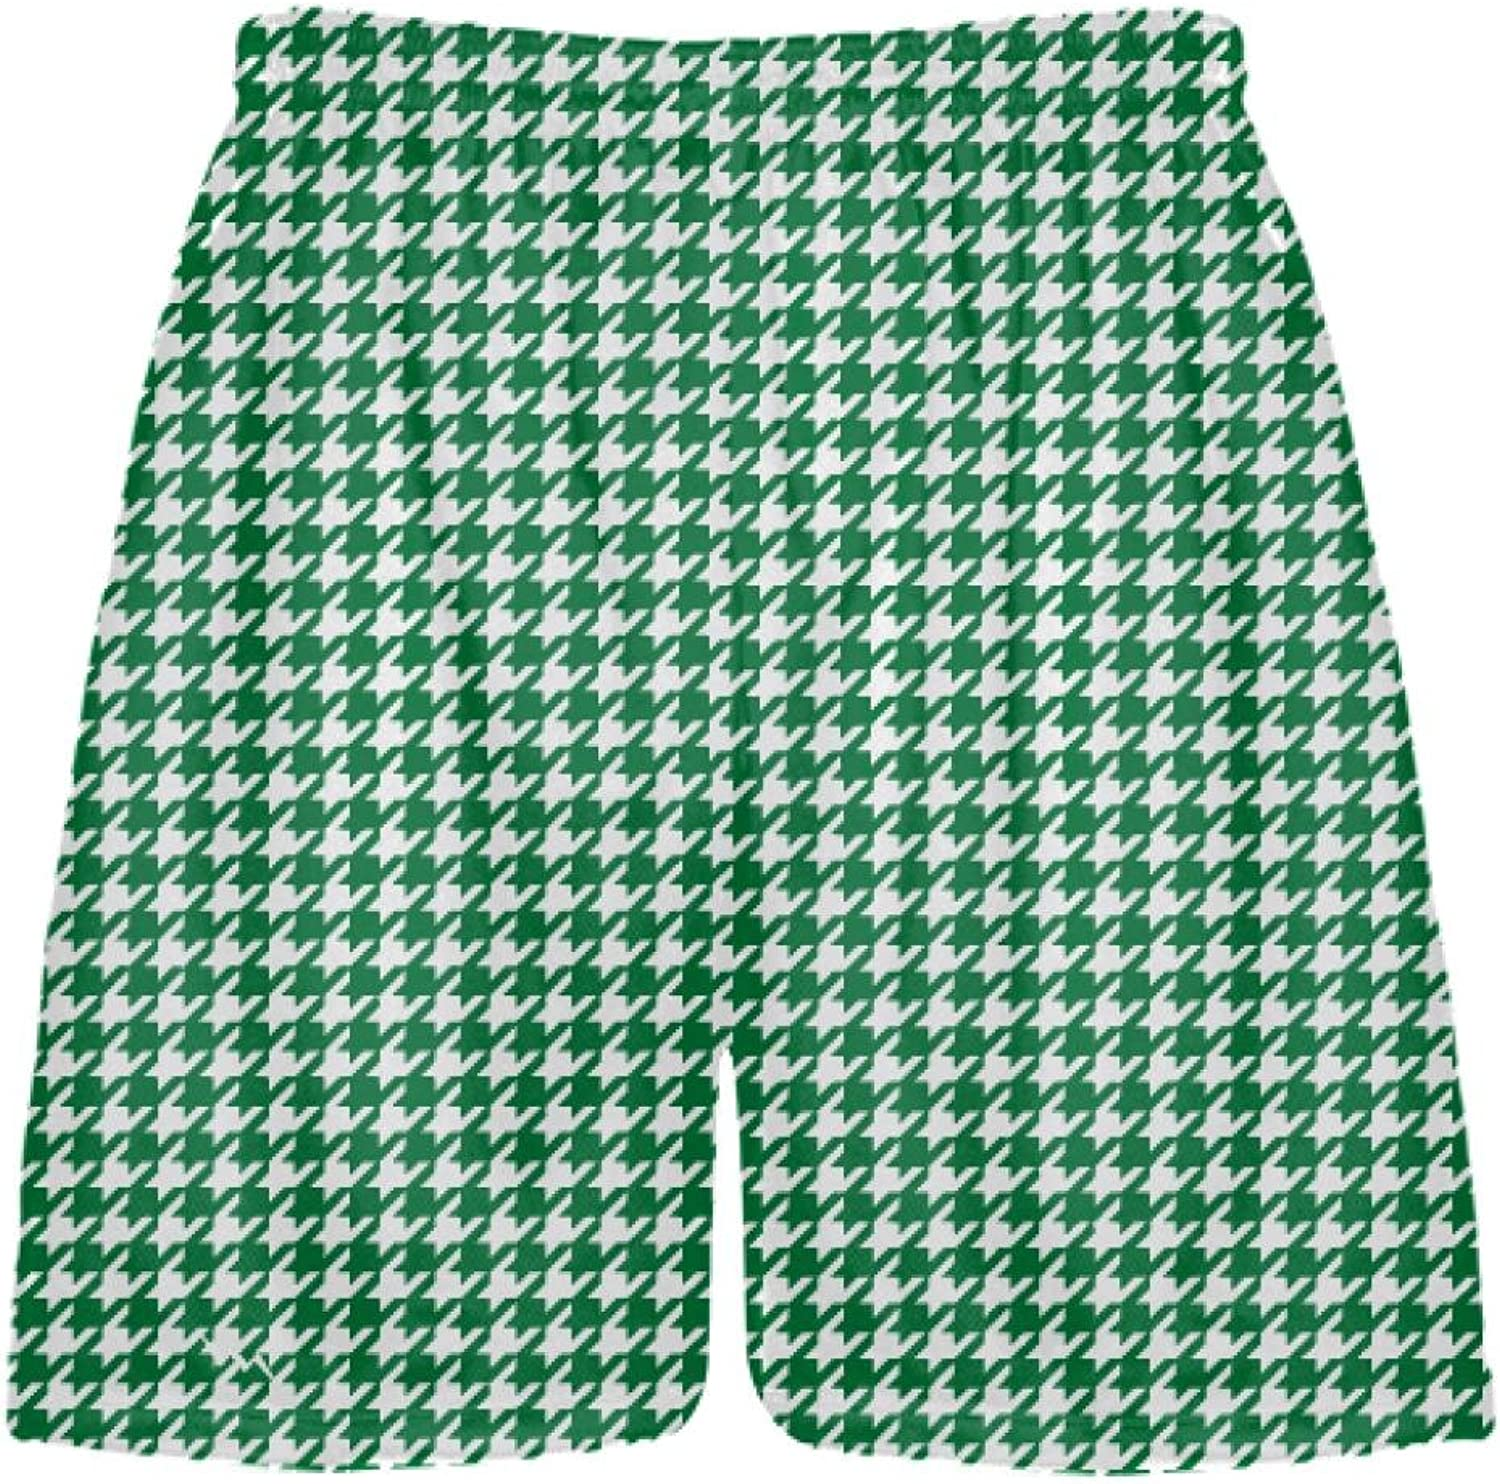 LightningWear Forest Green Houndstooth Shorts  Sublimated Shorts  Dark Green Lacrosse Shorts  Hounds Tooth